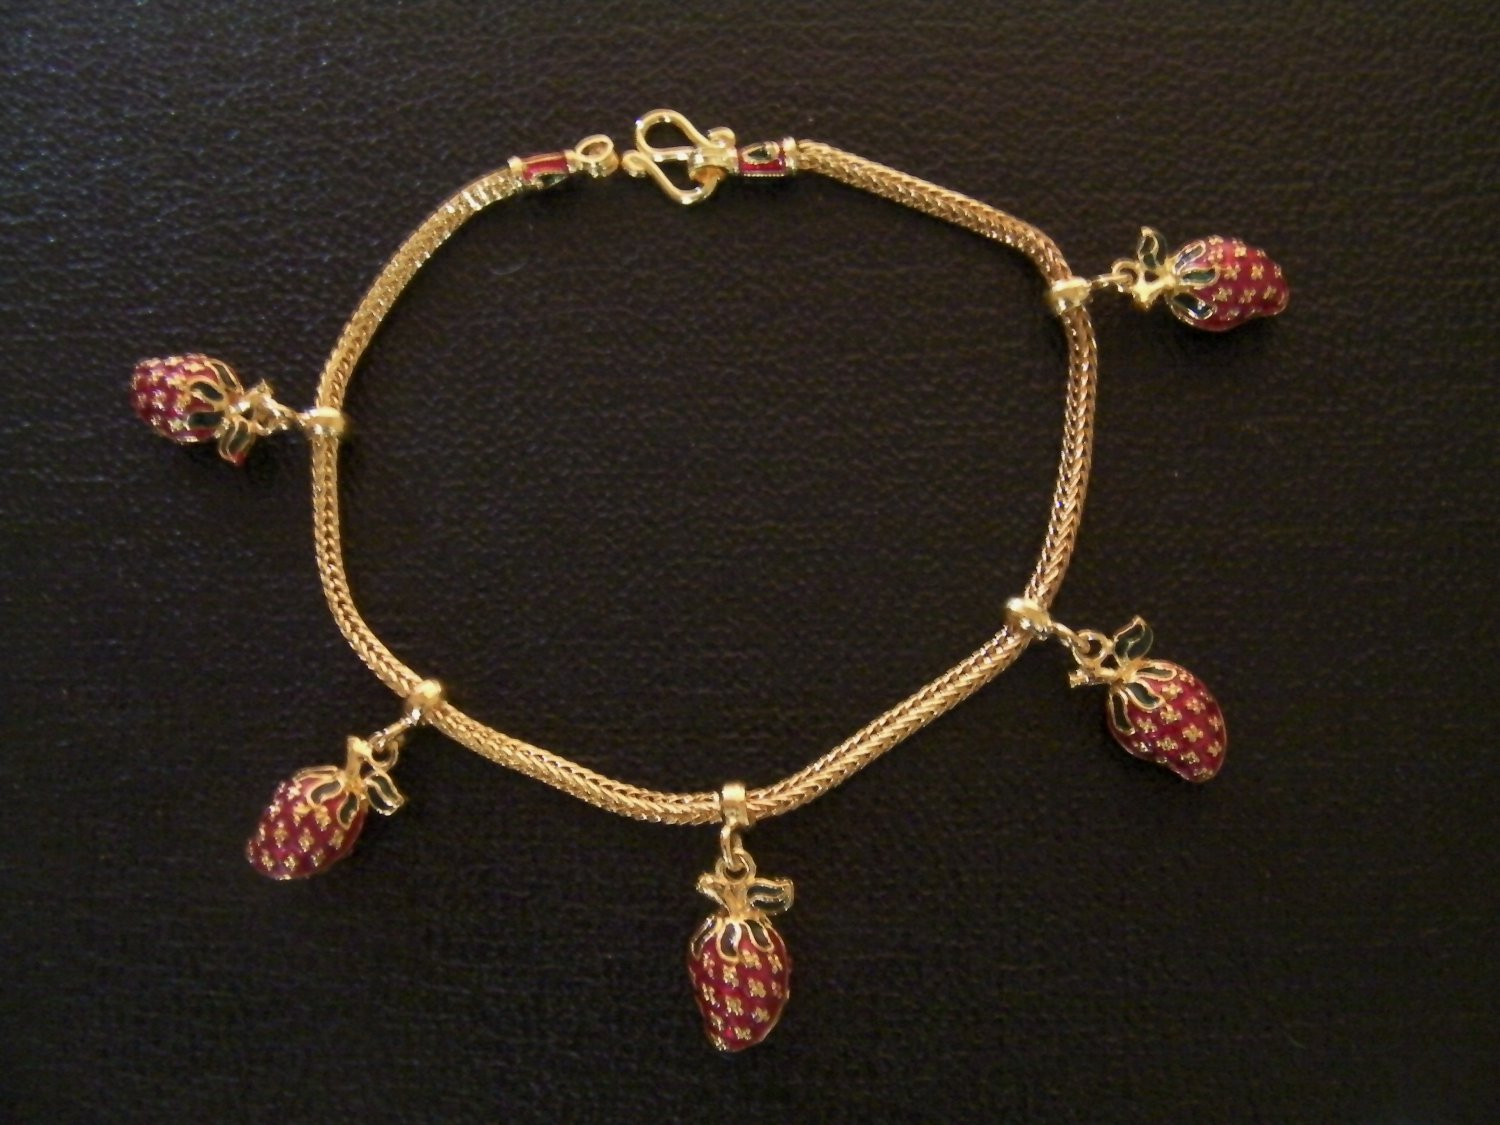 7 Inch lovely strawberrys 24K gold filled bracelet 131